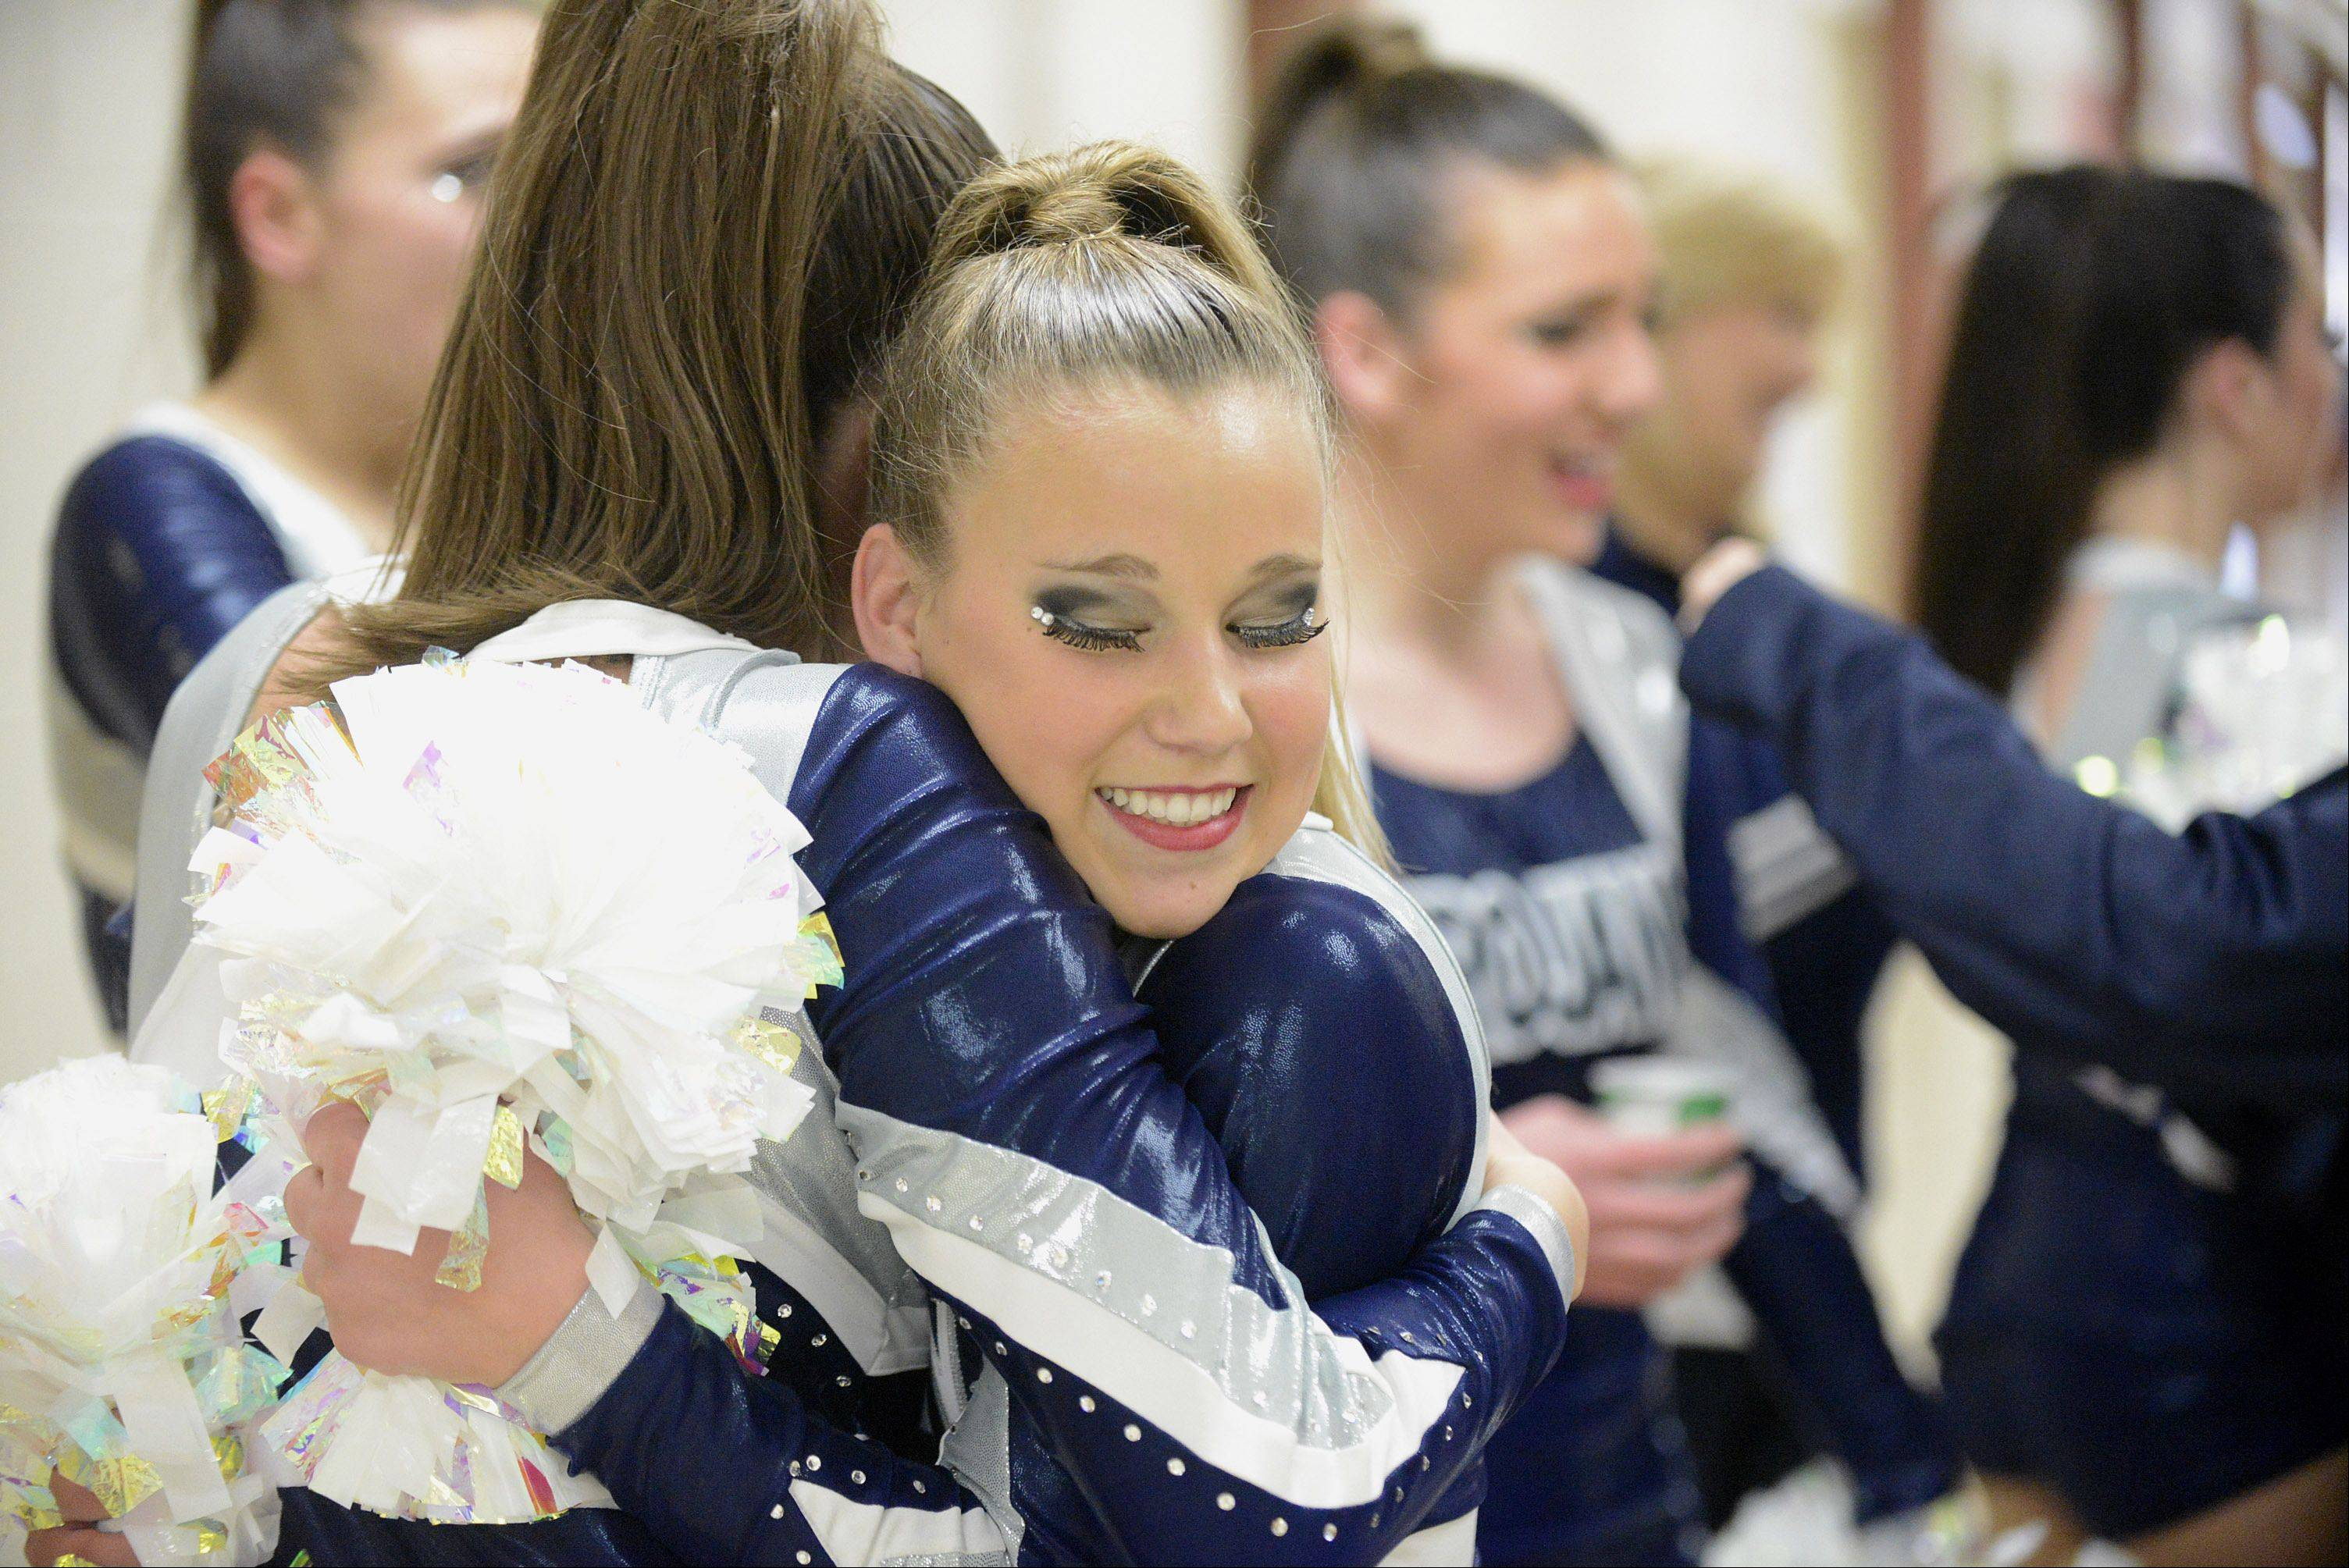 Cary Grove's Megan Emma, 15, facing, hugs teammate Anna Baran, 17, after their performance at the IHSA 2A competitive dance sectionals at Huntley High School on Saturday, January 25. The team took third place and is heading to the state competition.